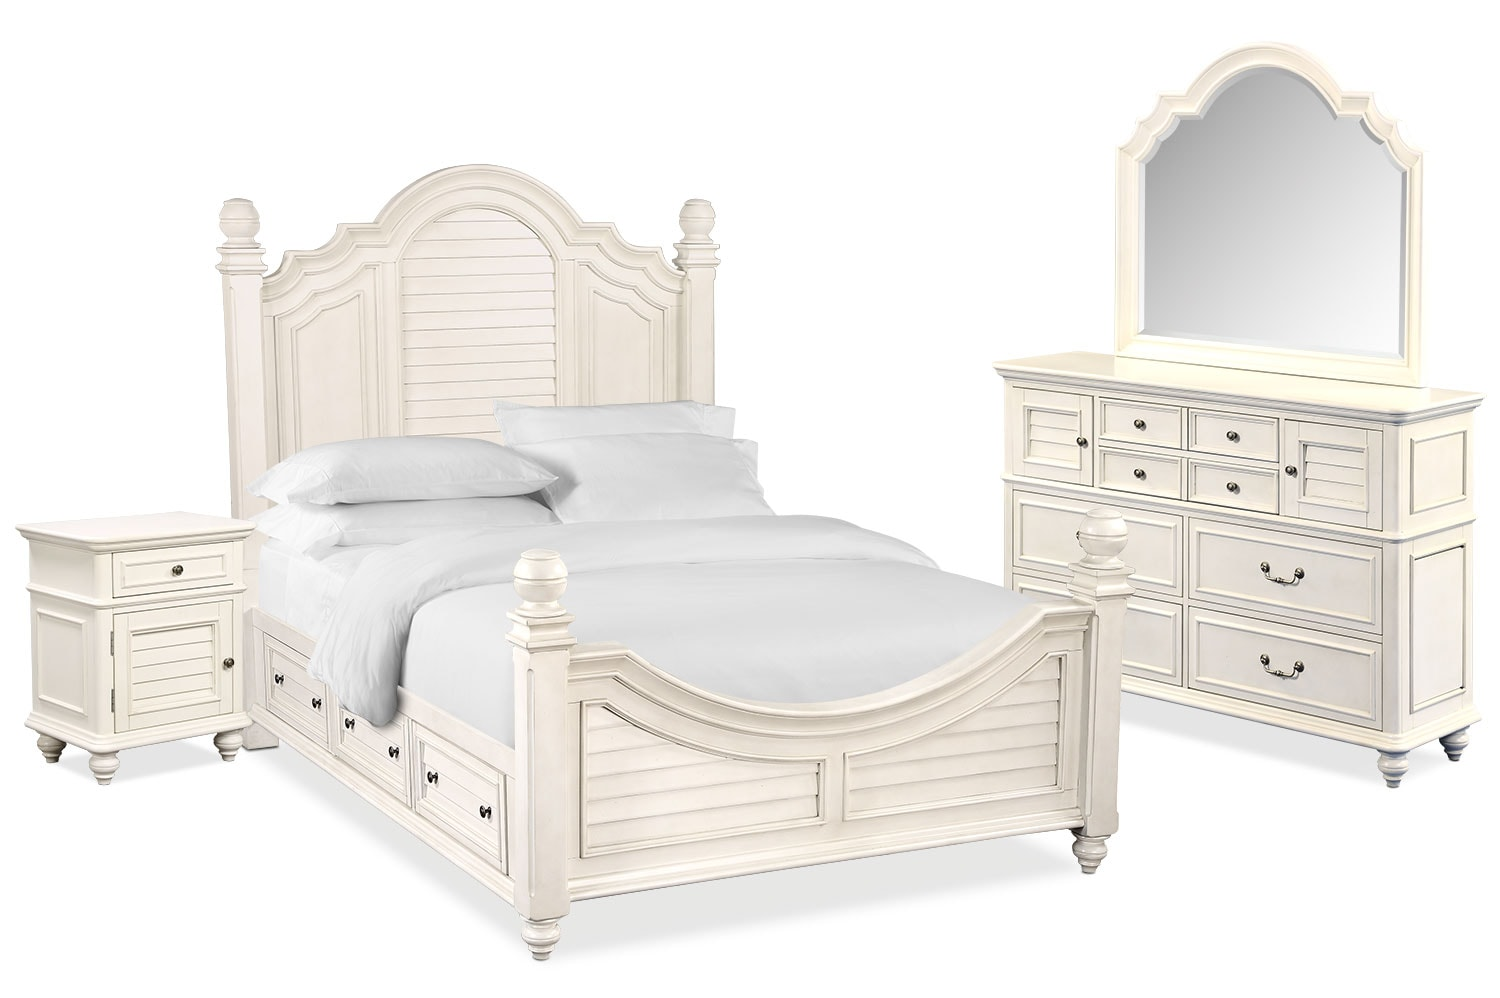 Bedroom Furniture - Charleston 6-Piece Poster Bedroom Set with 4 Underbed Drawers, Nightstand, Dresser and Mirror